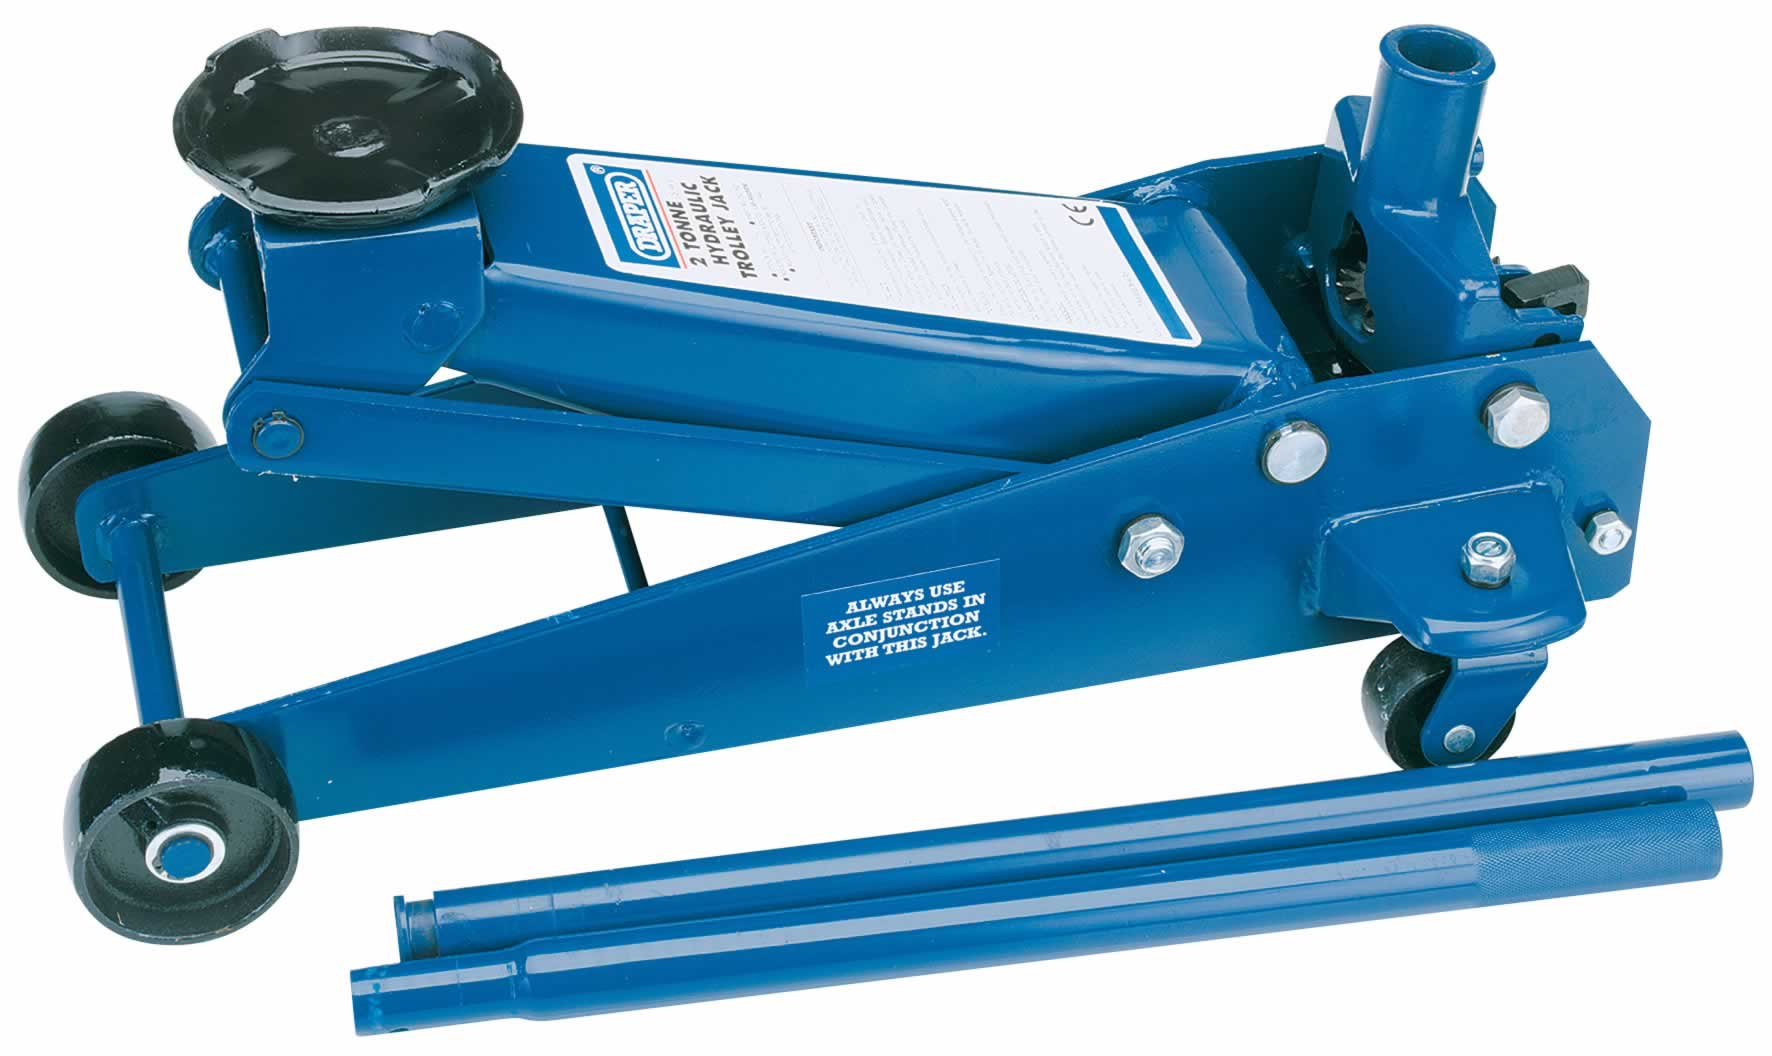 2 TONNE HEAVY DUTY GARAGE TROLLEY JACK